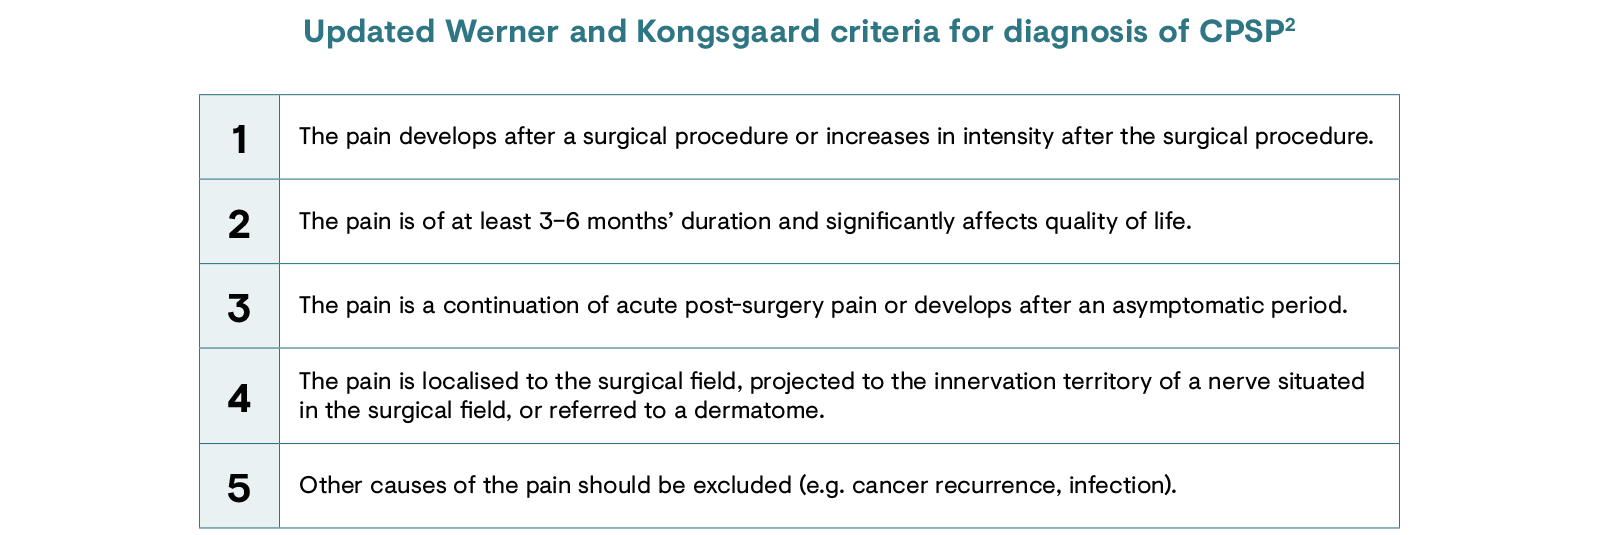 Updated Werner and Kongsgaard criteria for diagnosis of chronic post surgical pain